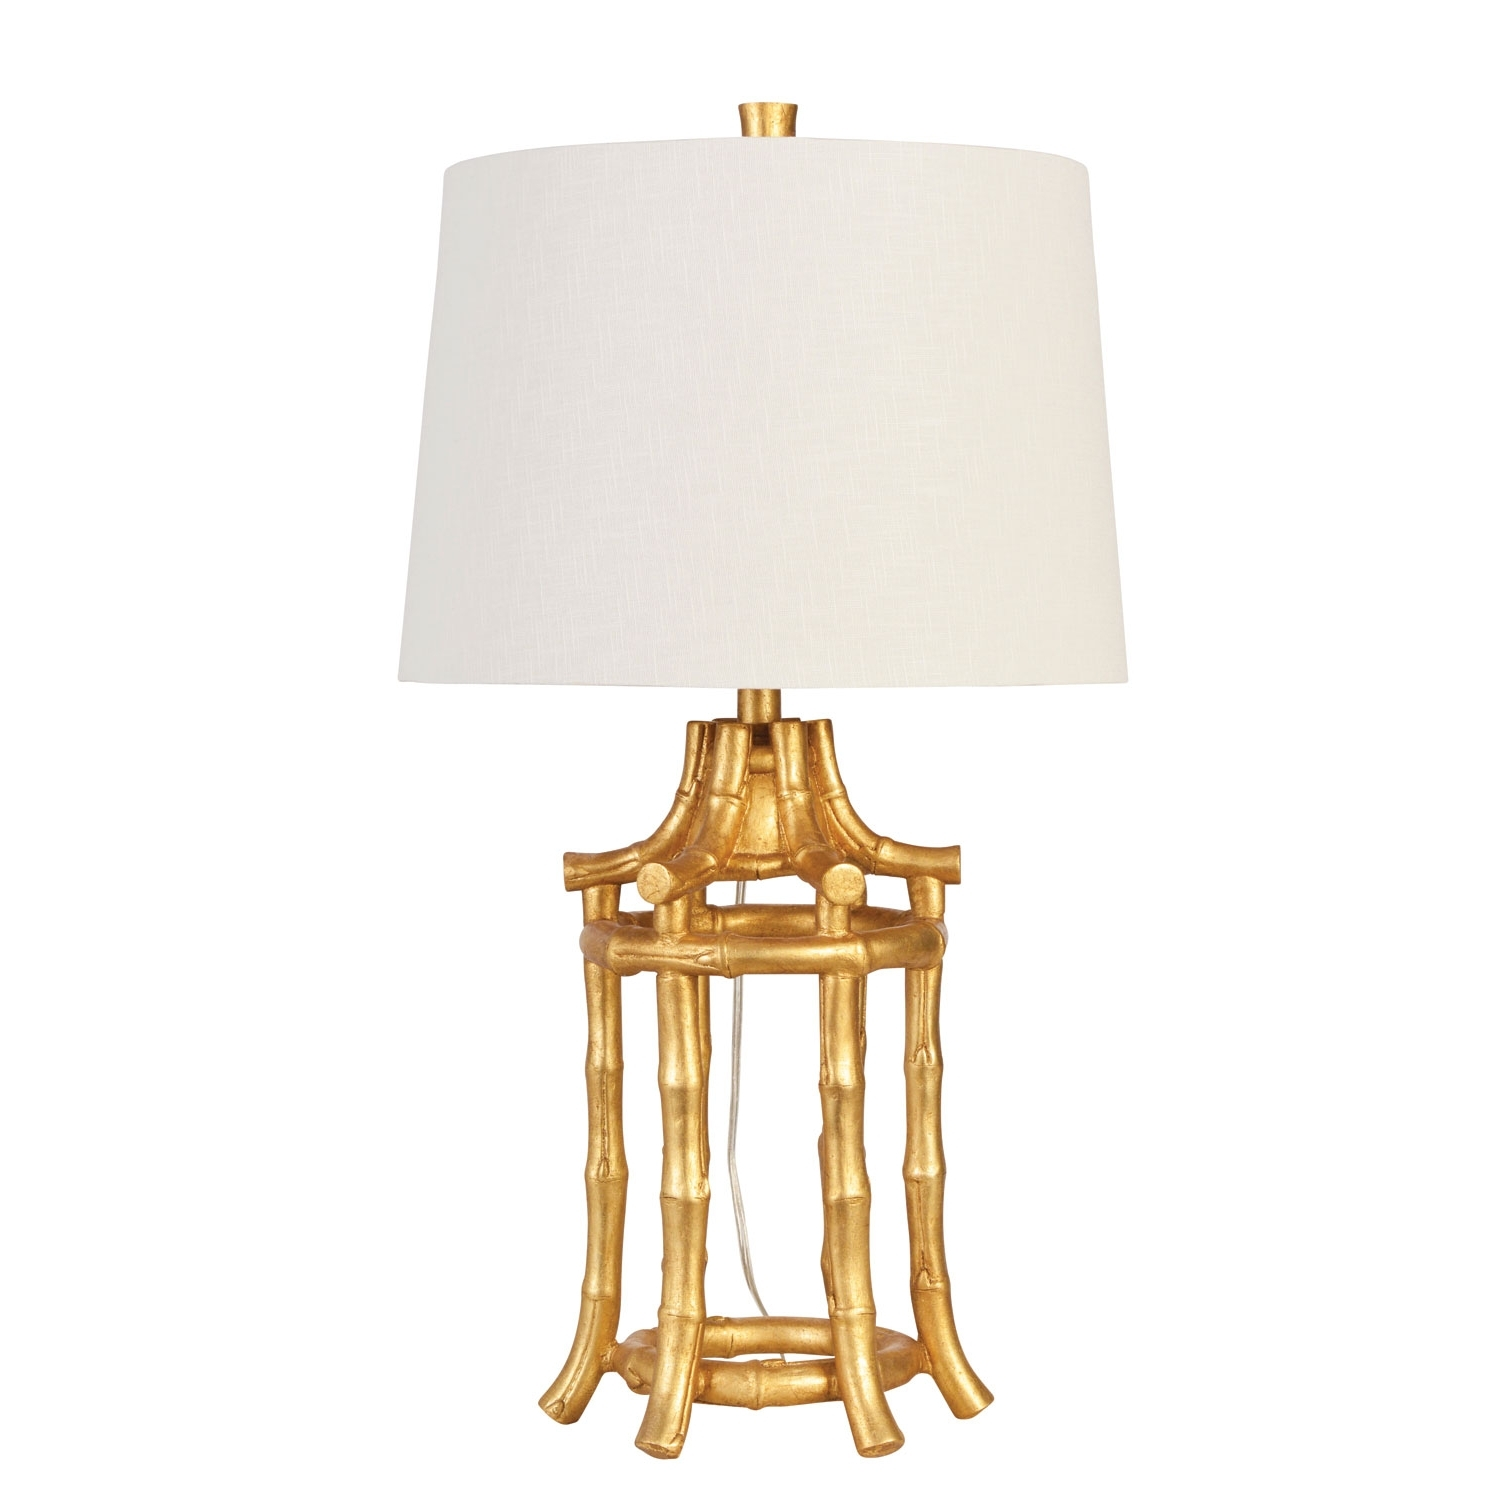 Popular Lamp : Gold Table Lamp Base Lamps Living Room Shades For With Metal Throughout Gold Living Room Table Lamps (View 15 of 20)